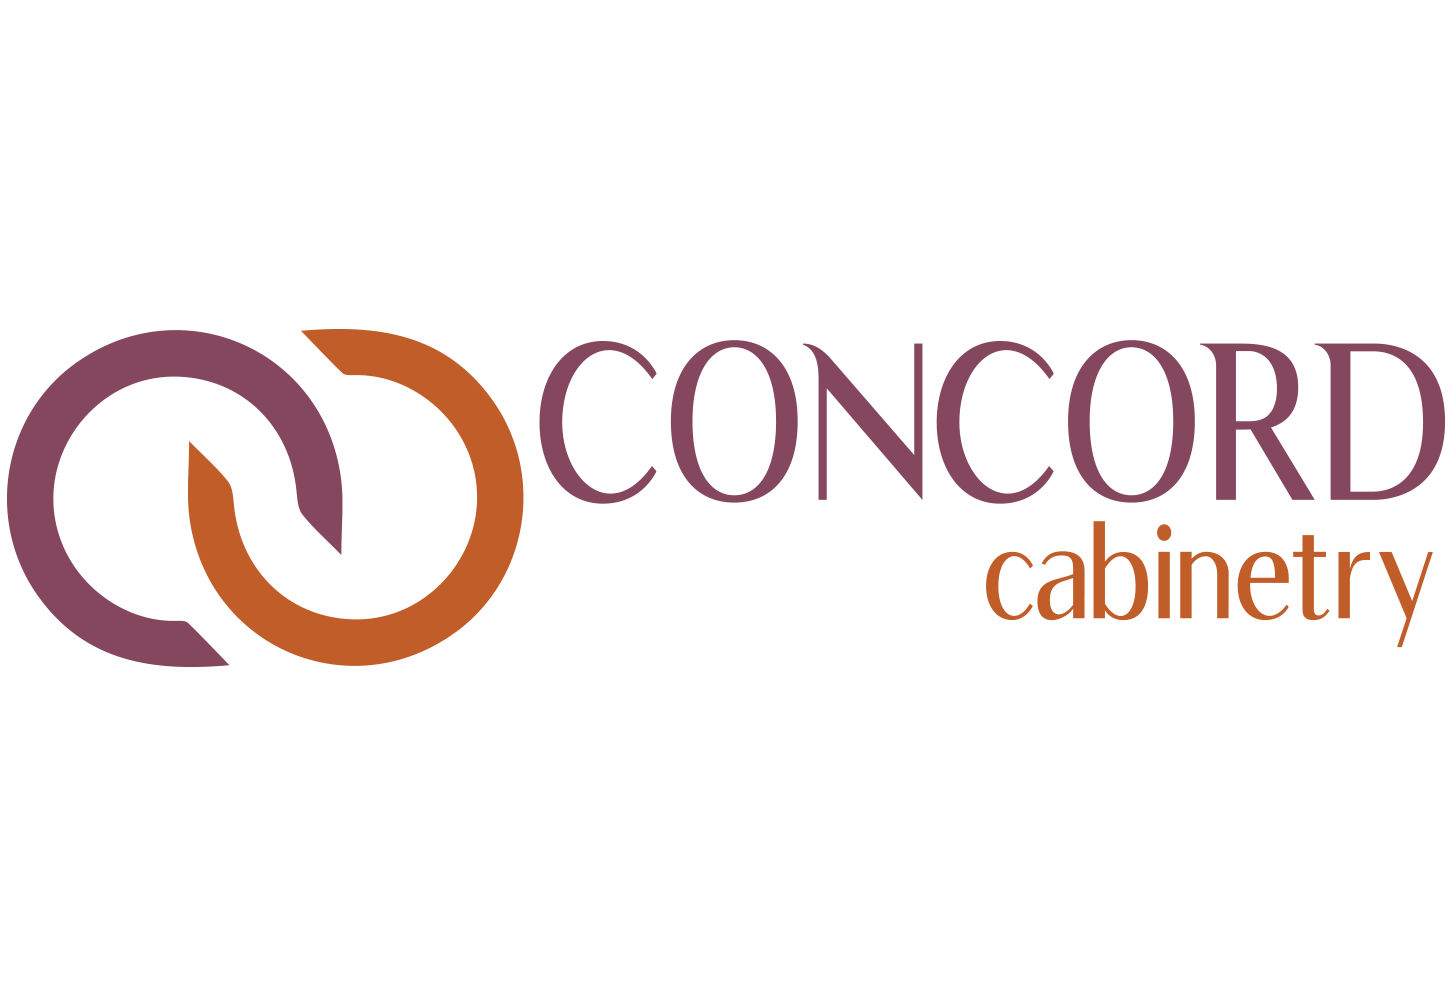 concord-logo.png